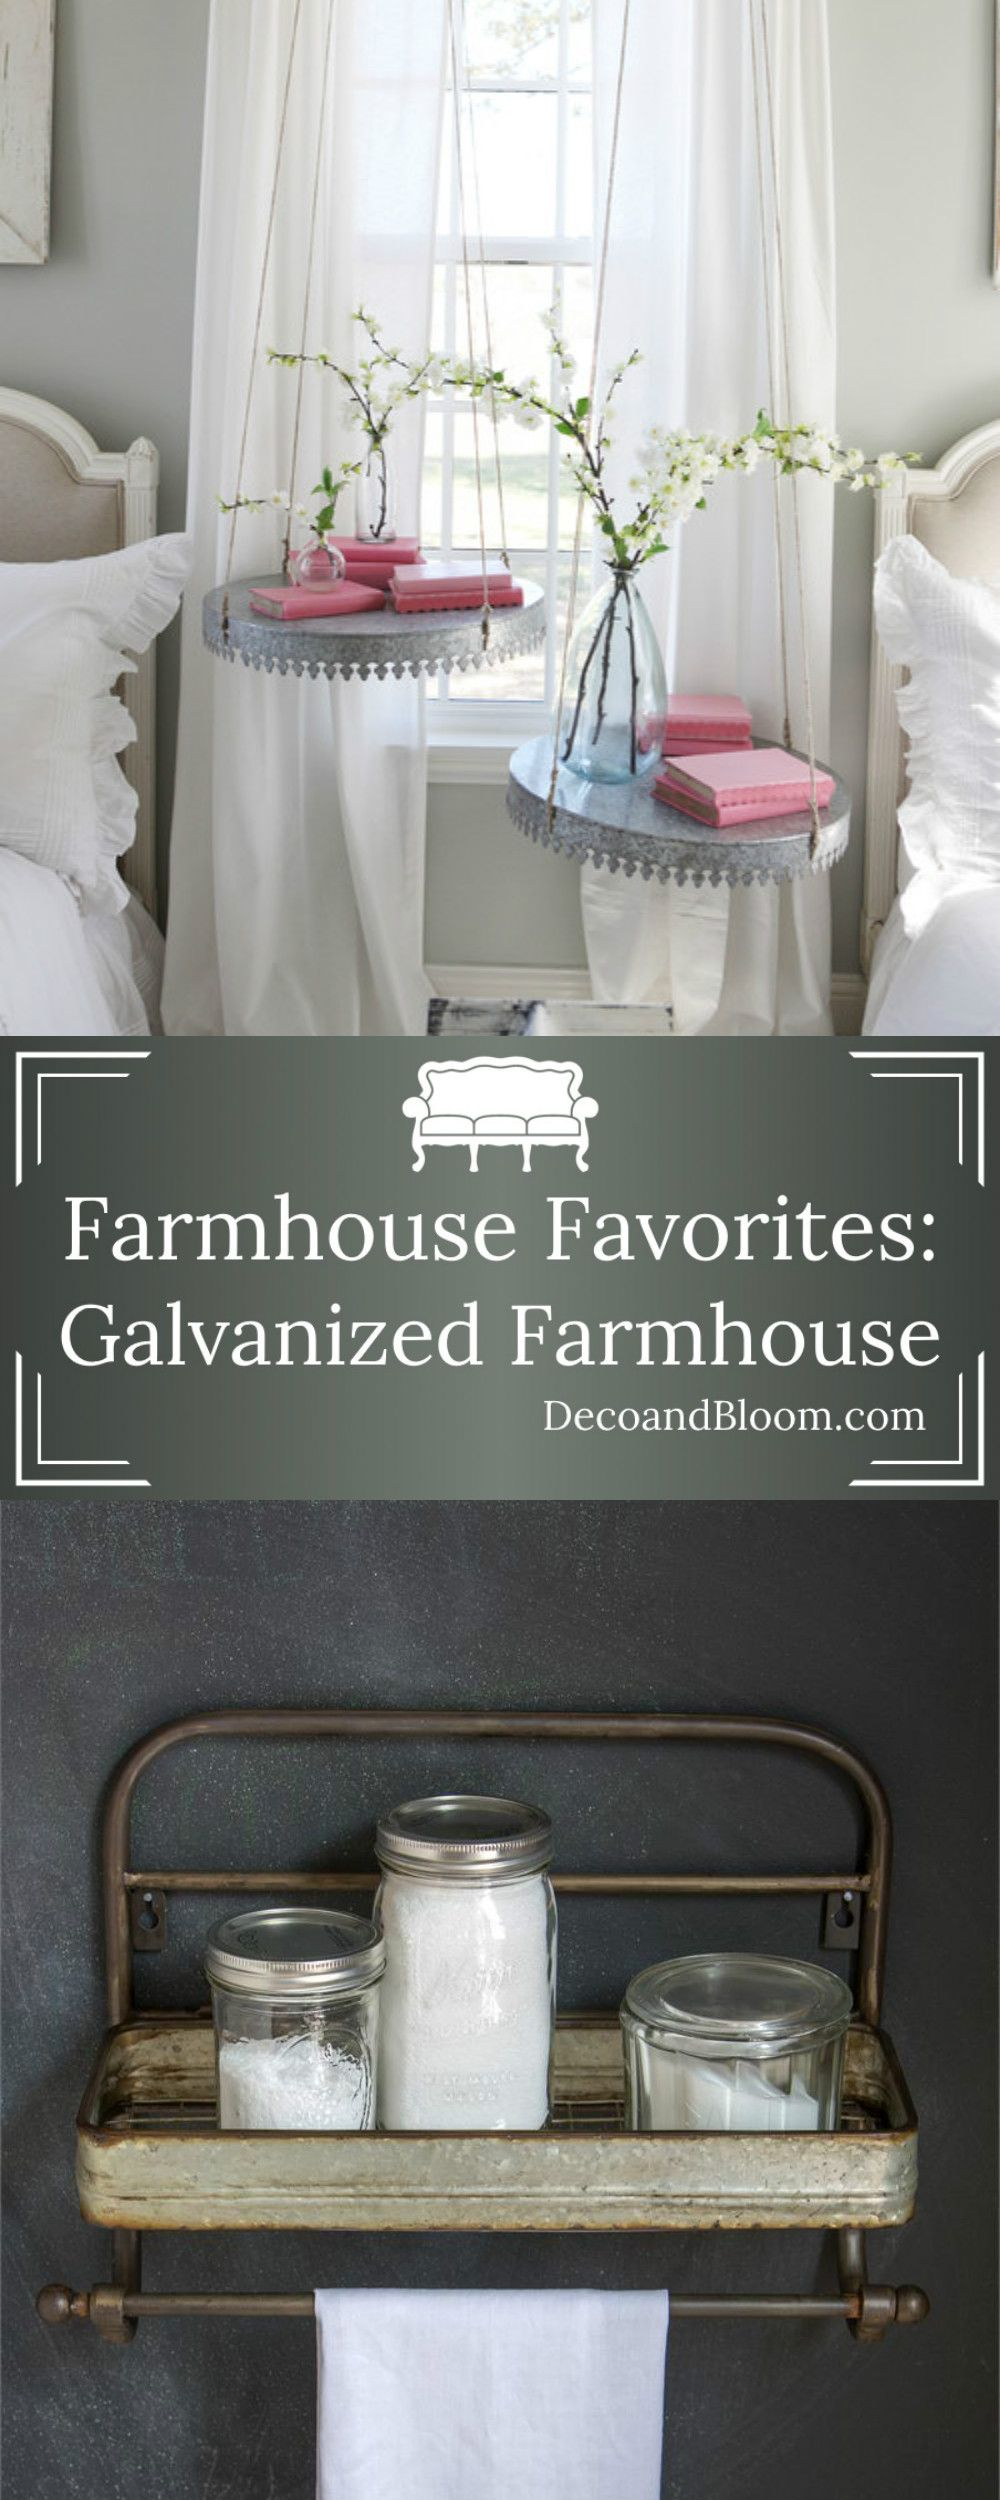 Farmhouse favorites galvanized farmhouse farmhouse style